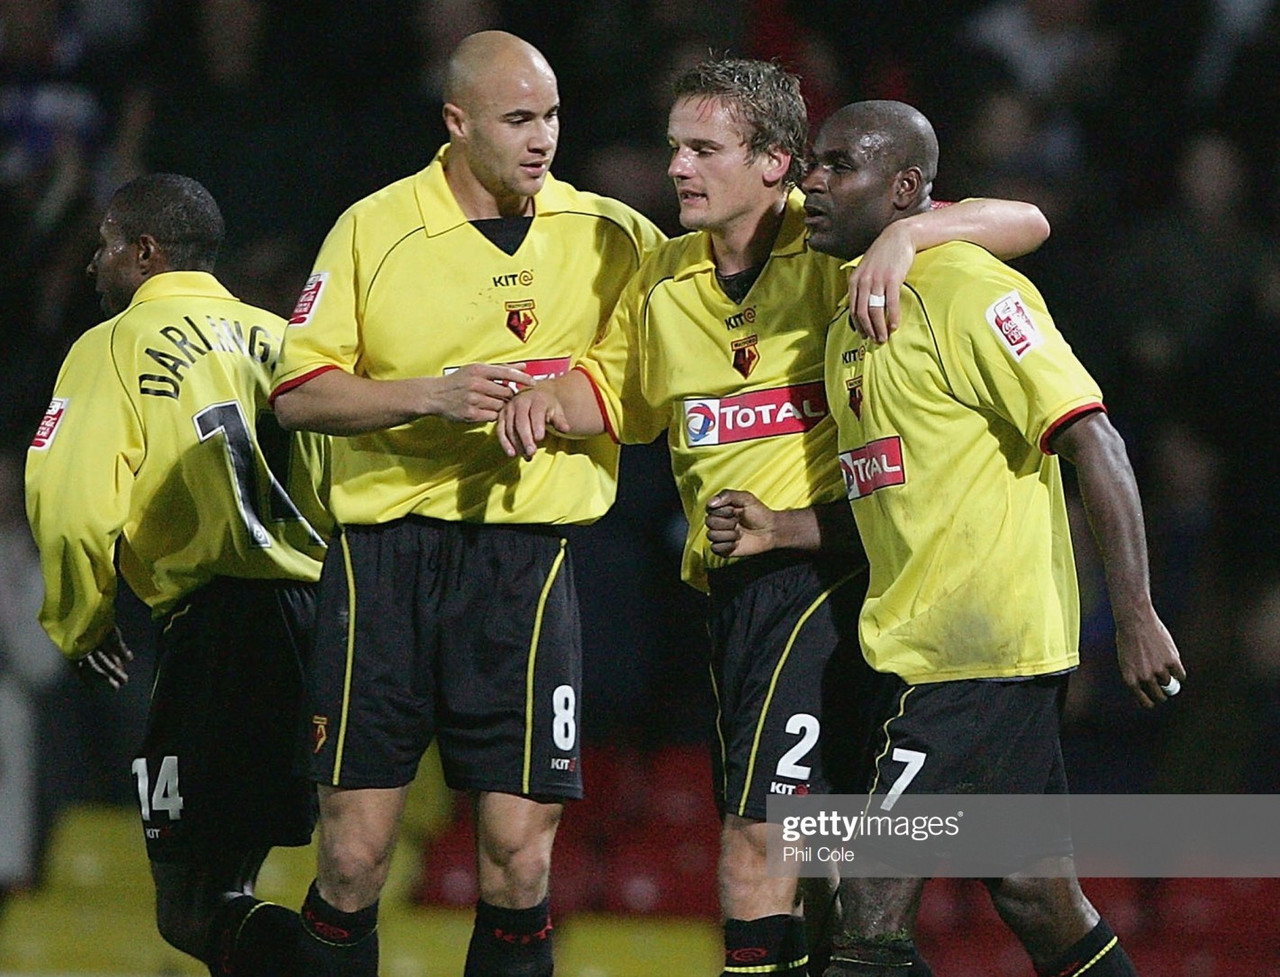 Memorable Match: Watford 5-2 Southampton - Seven-goal thriller in League Cup clash